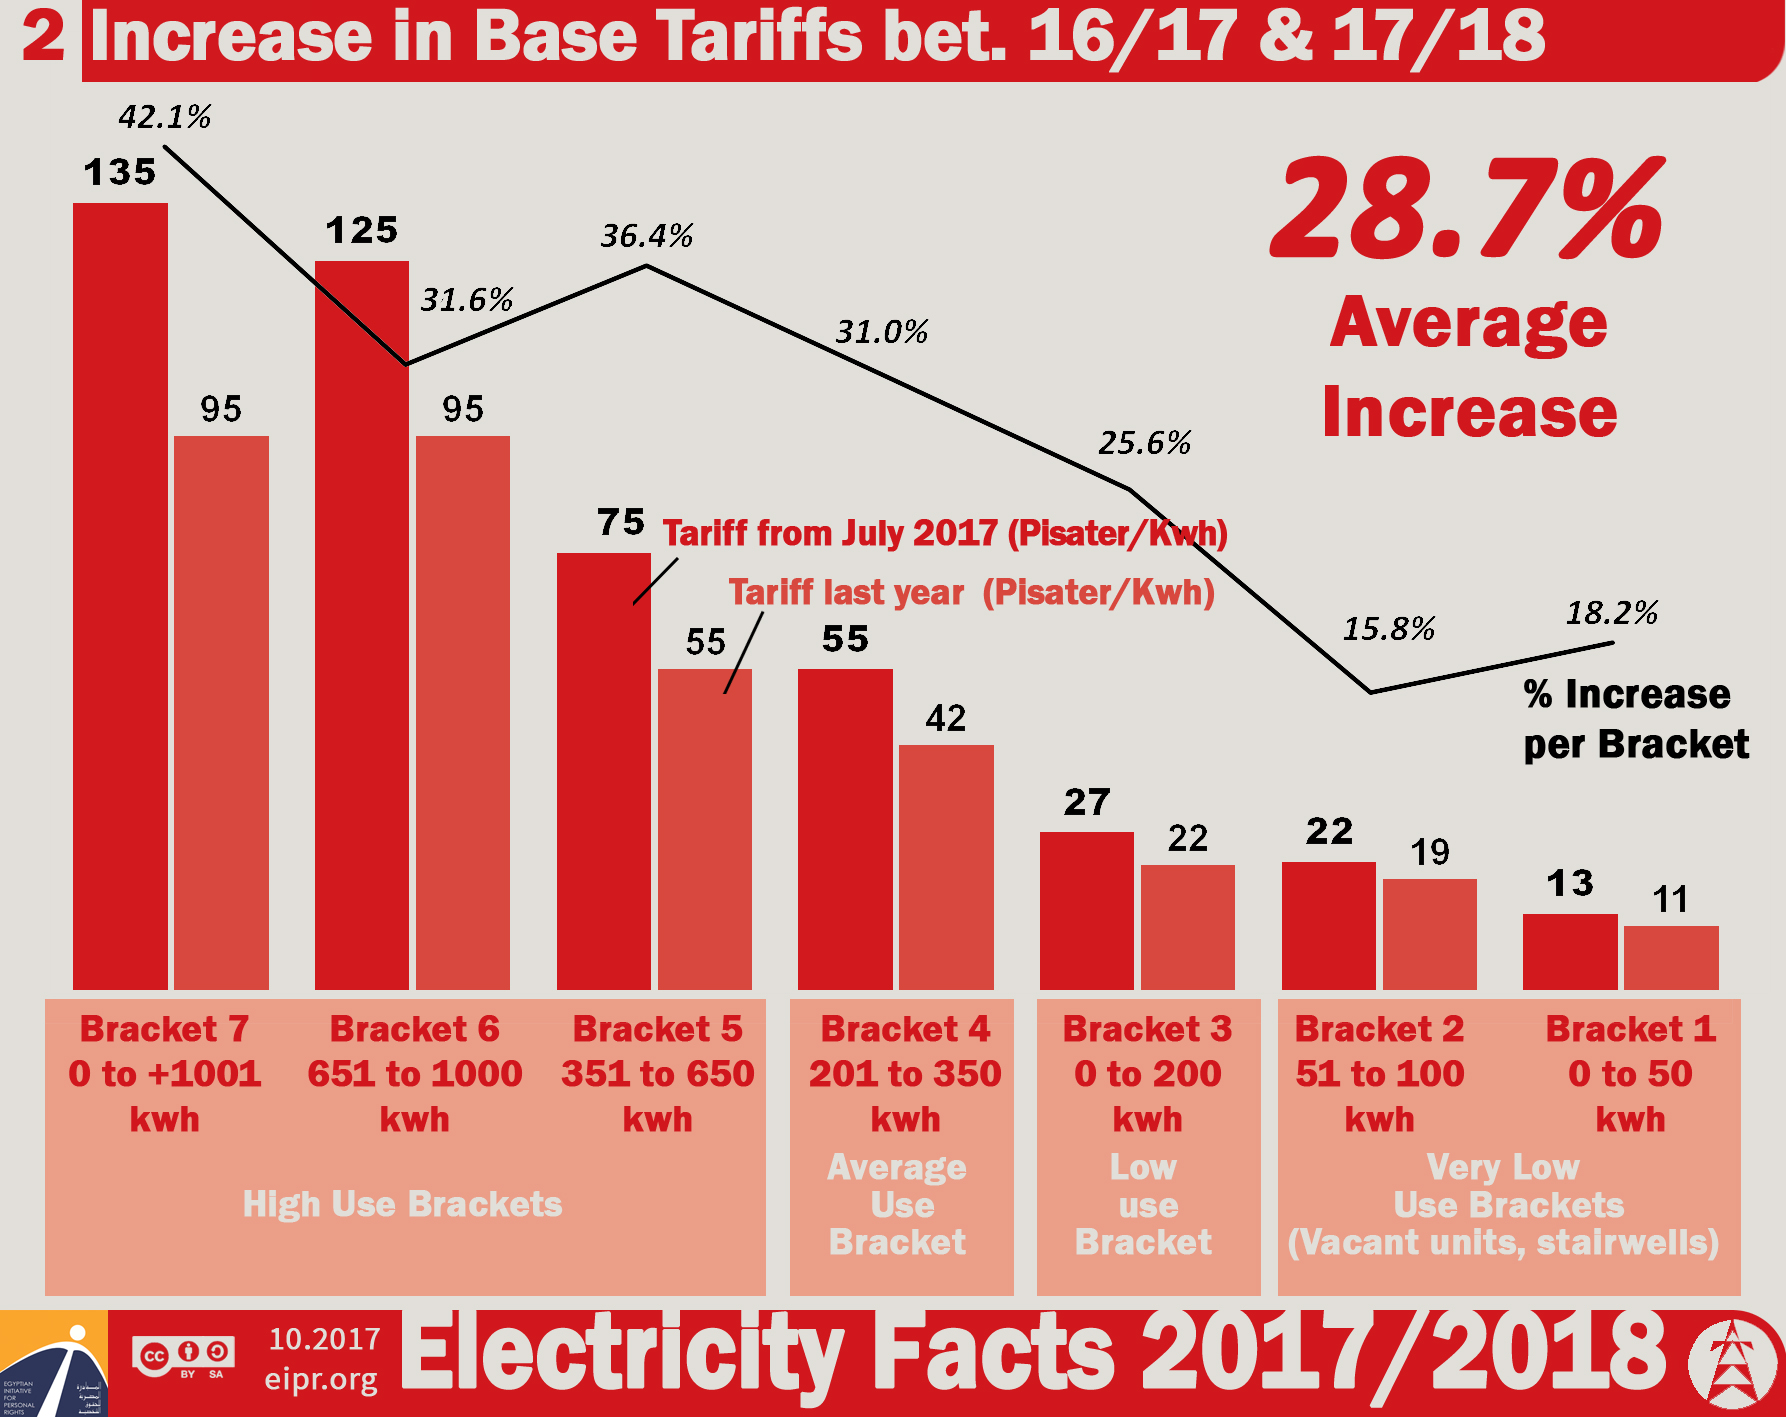 The increase in tariffs for electricity in the Moscow region in 2013 72